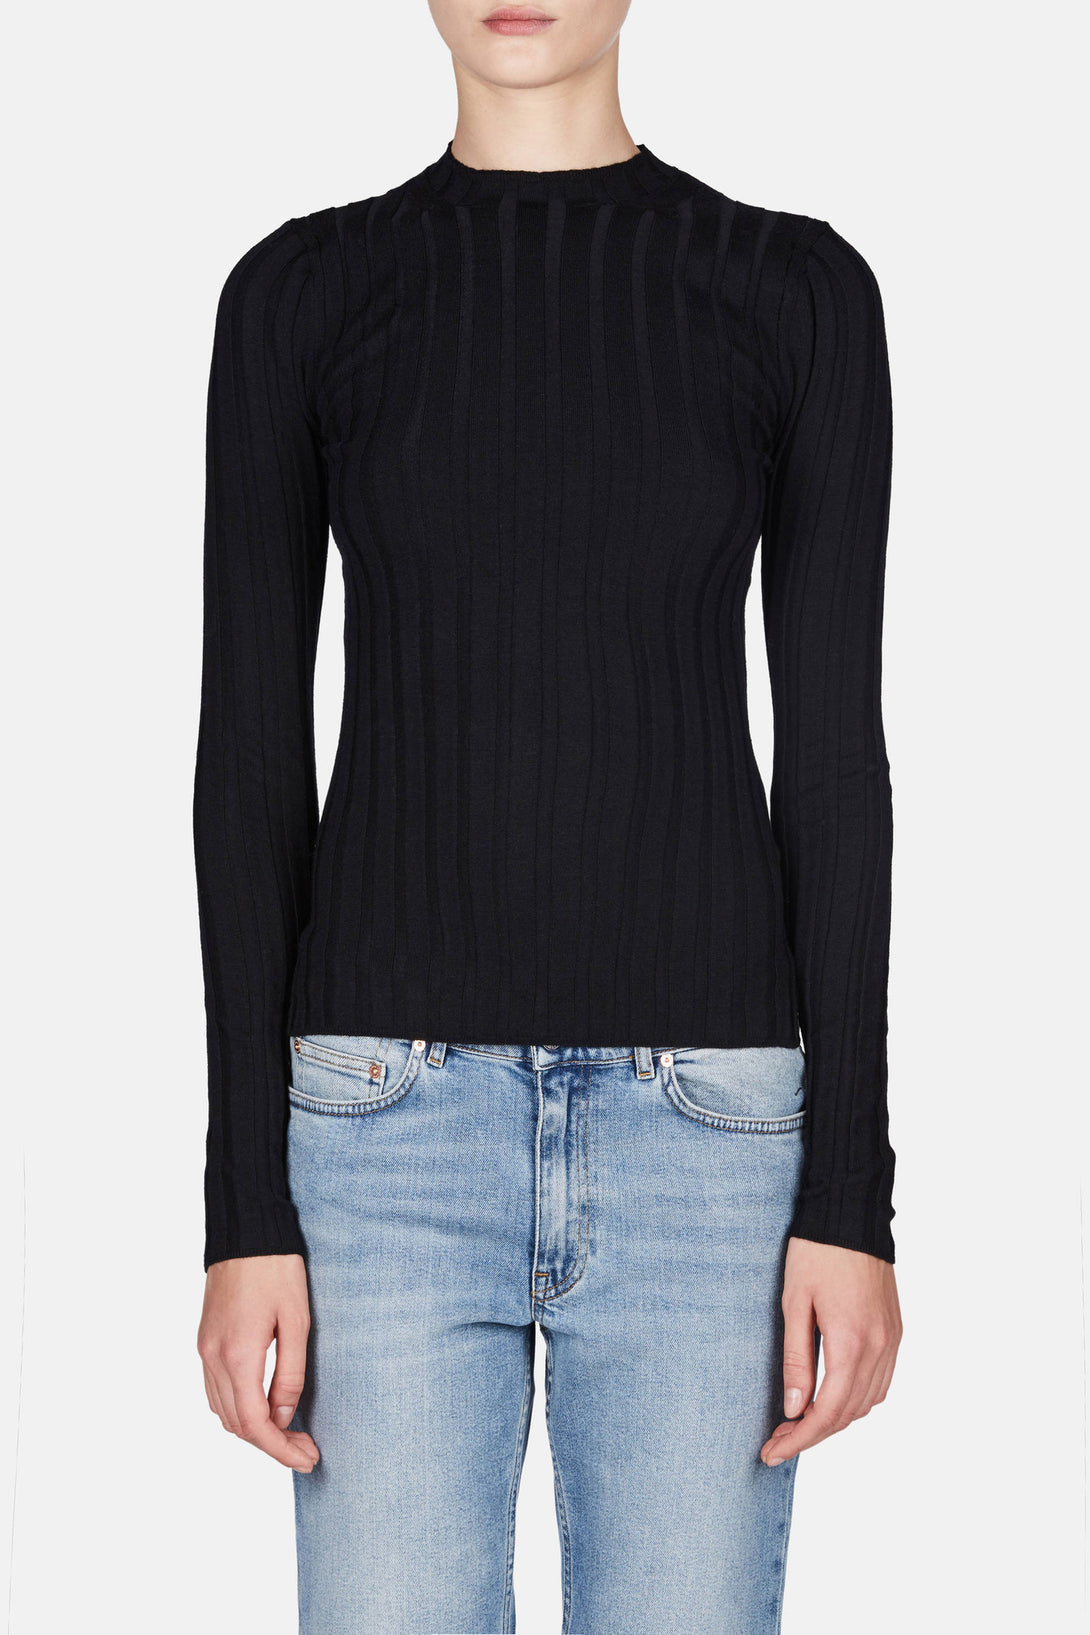 Carin Sweater - Black